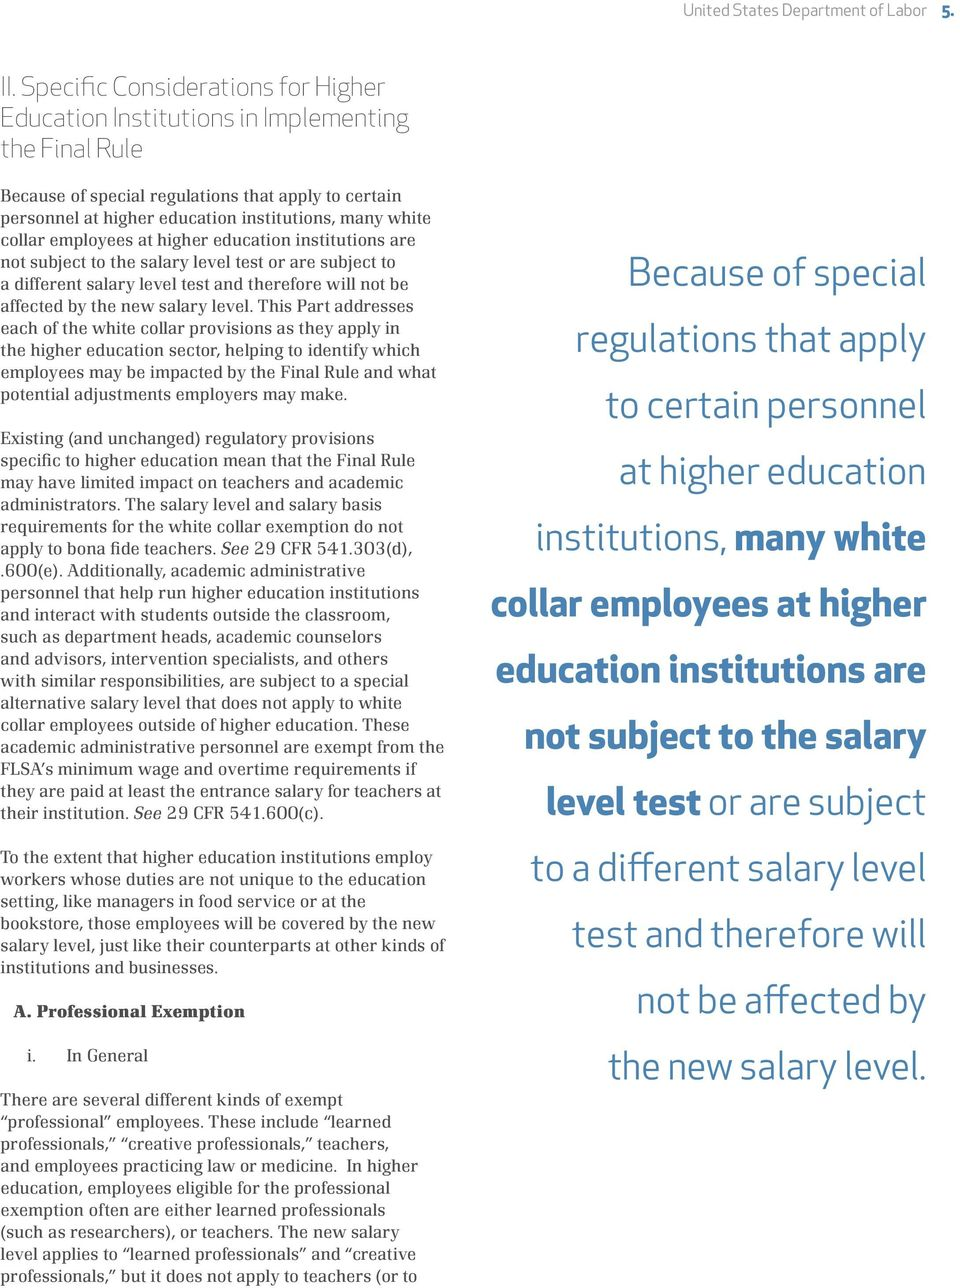 collar employees at higher education institutions are not subject to the salary level test or are subject to a different salary level test and therefore will not be affected by the new salary level.